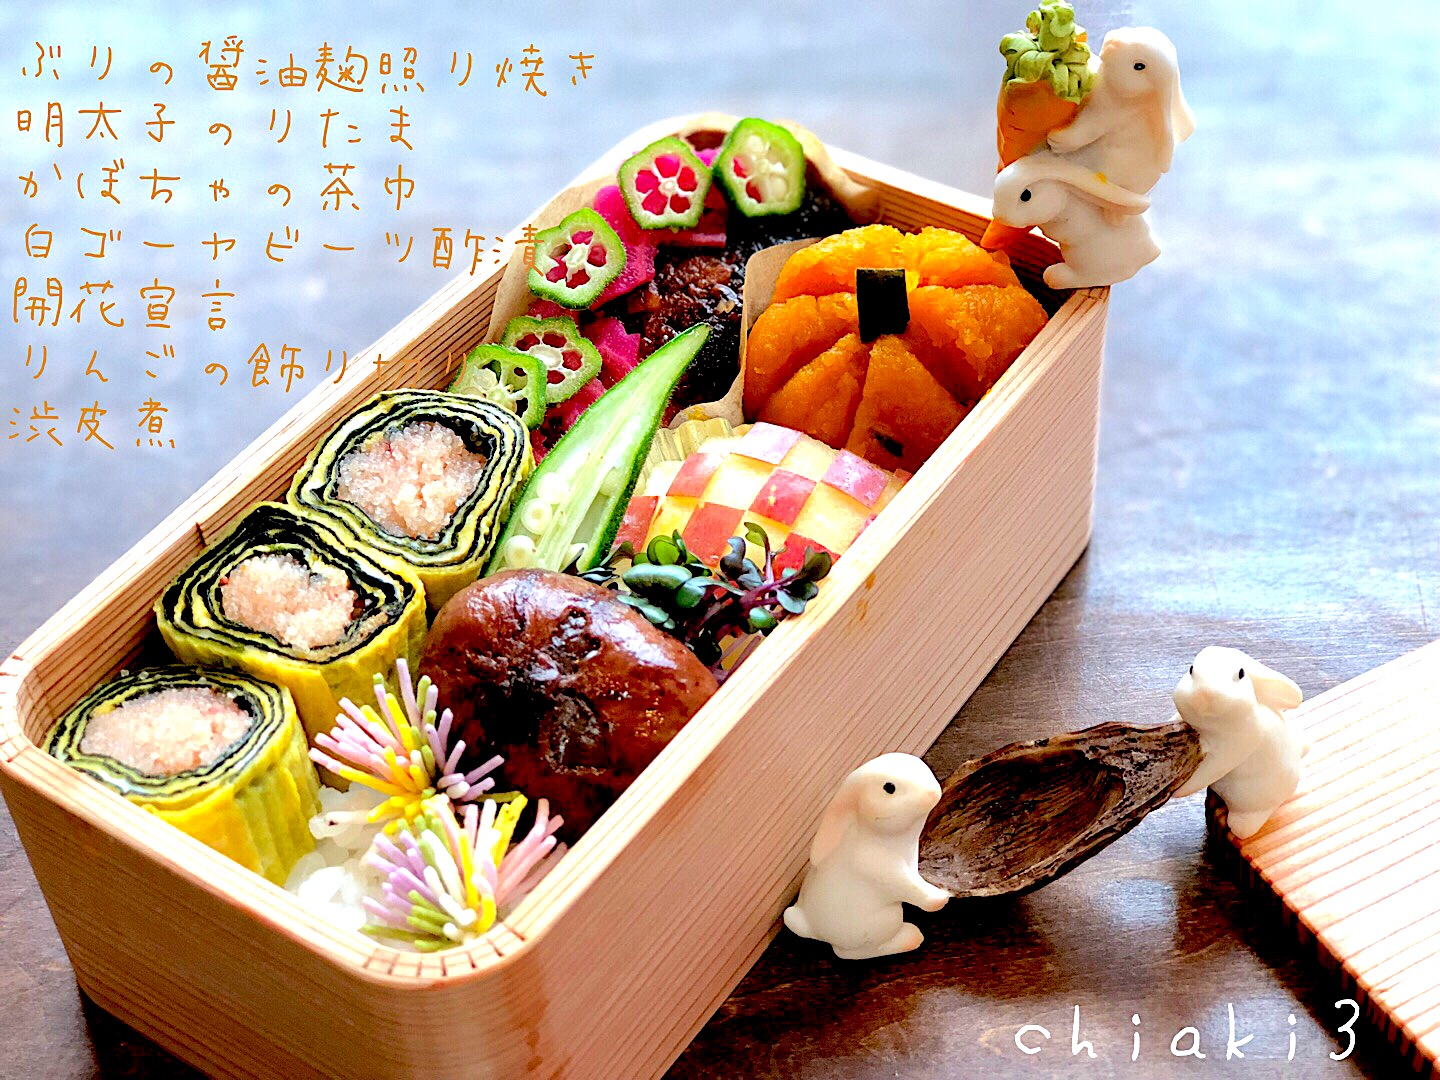 Daughter's lunch box 1025 #yellowtail in soy sauce koji #candied chestnuts #mashed pumpkin balls